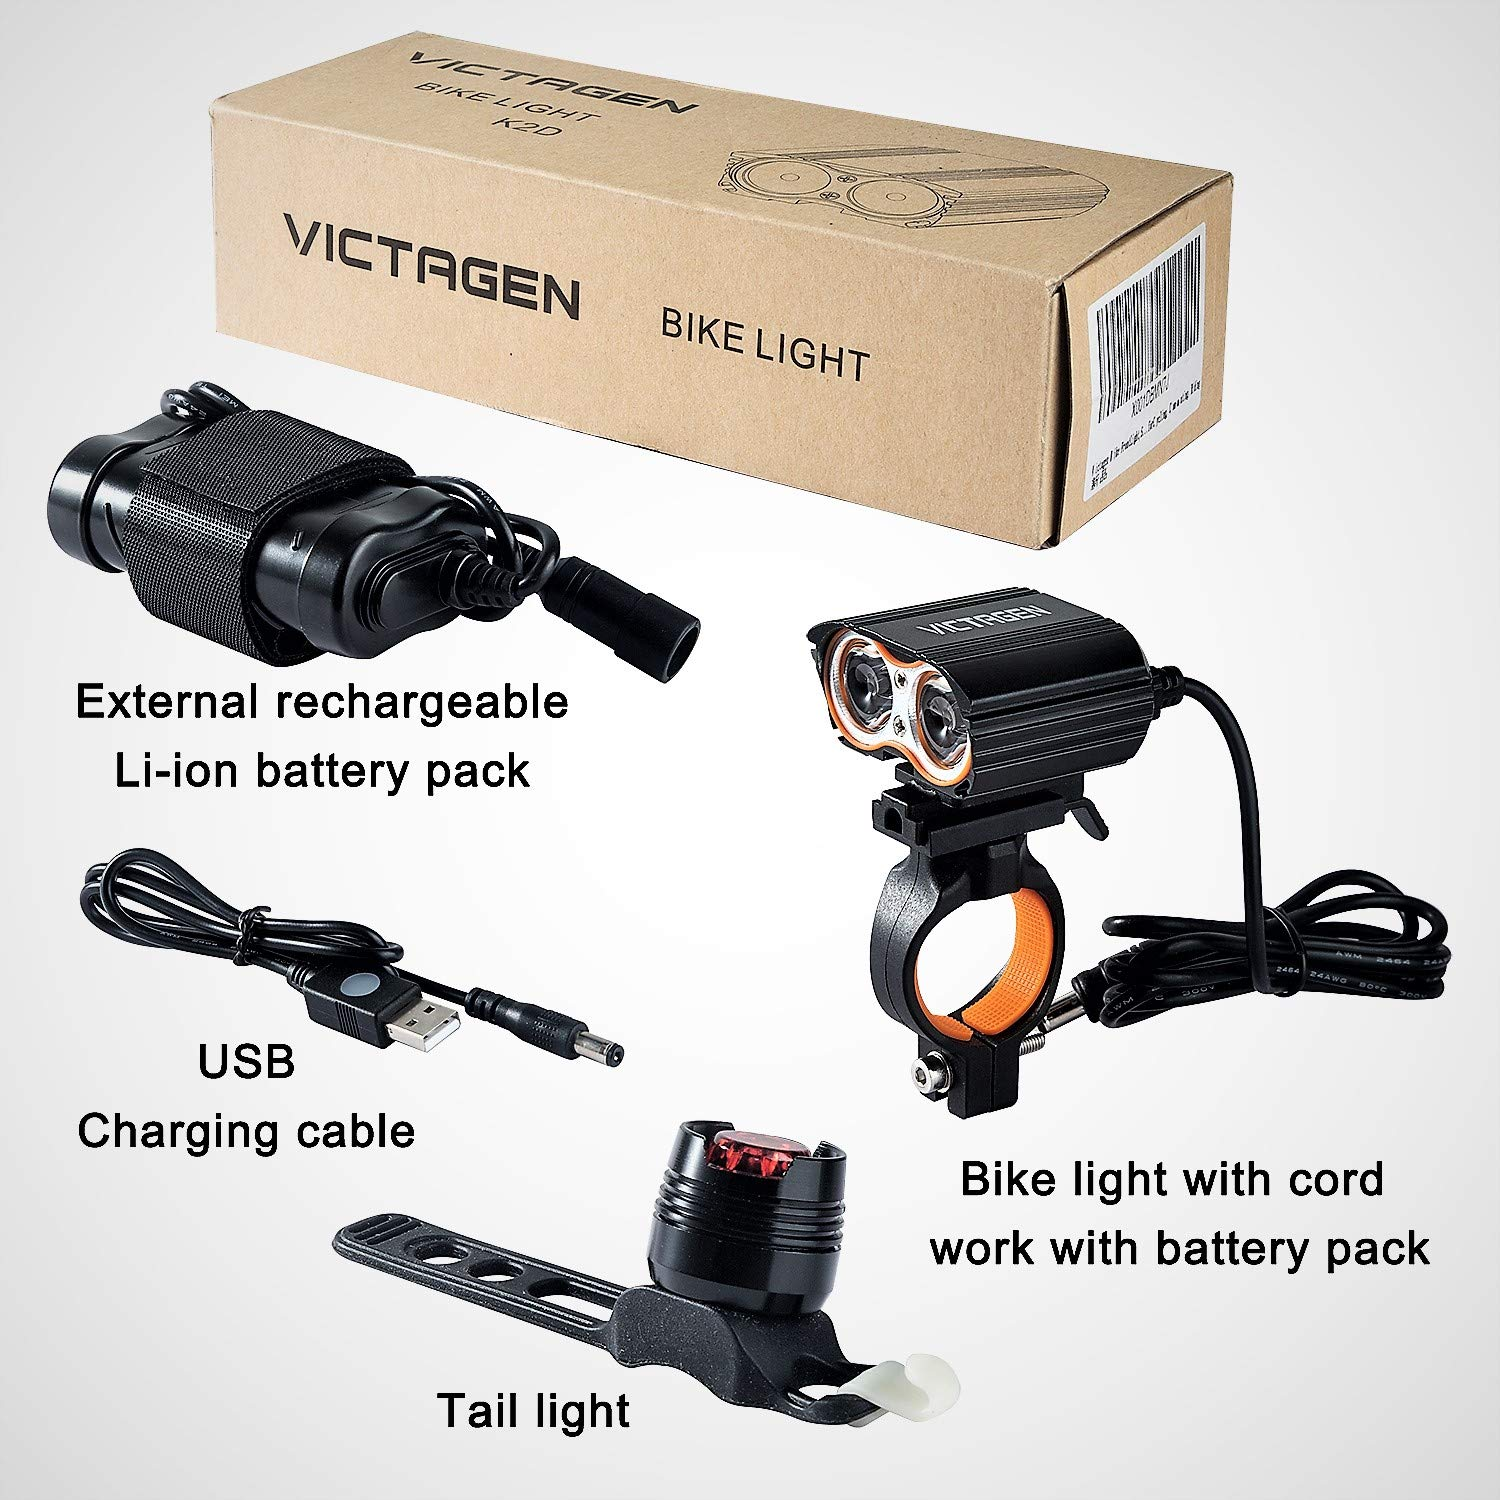 Victagen Bike Light,Bicycle Front & Tail Light,Super Bright 2400 Lumens,Rechargeable Bike Headlight Waterproof LED Front & Rear Light, Easy to Mount Fits Mountain Road Bike Kids Men Cycling Commuter by victagen